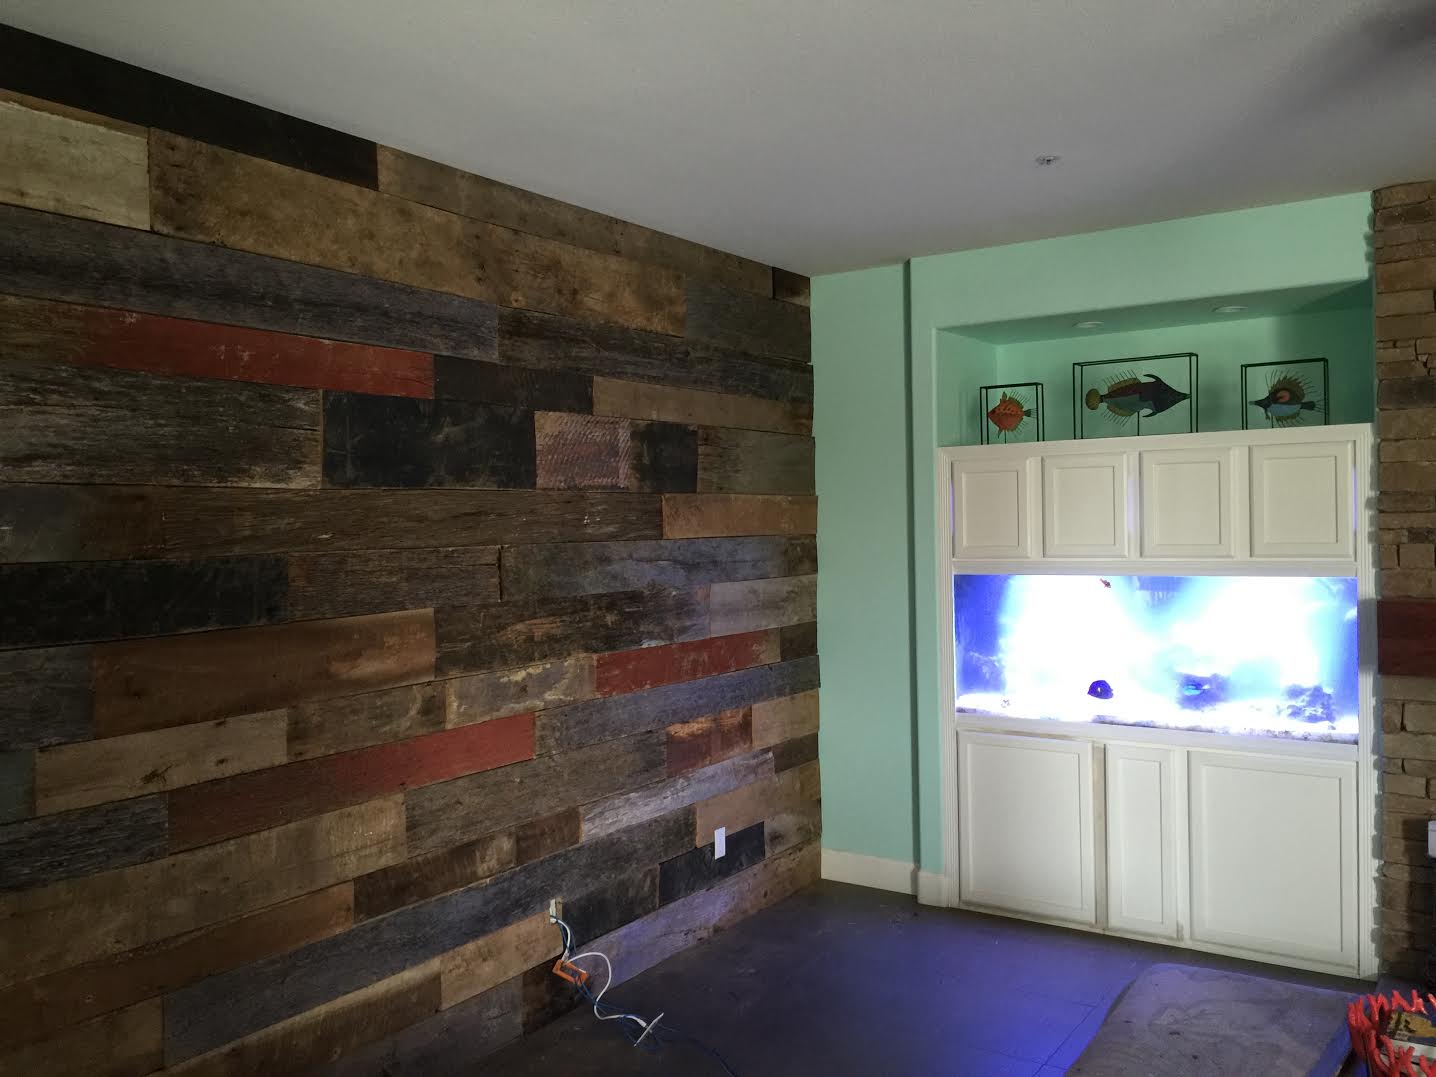 These customers came in on Saturday inquiring about doing an accent wall in their home with reclaimed wood barn boards. They went home, took measurements of the wall ,e-mailed them to us, we sent them over an estimate& contact info of 3 installers we refer to our customers for installation, they came in on Tuesday to select their wood & by the end of the day Wednesday their plain wall looked like this! It is that simple to make any wallin your homea one of kind accent piece.